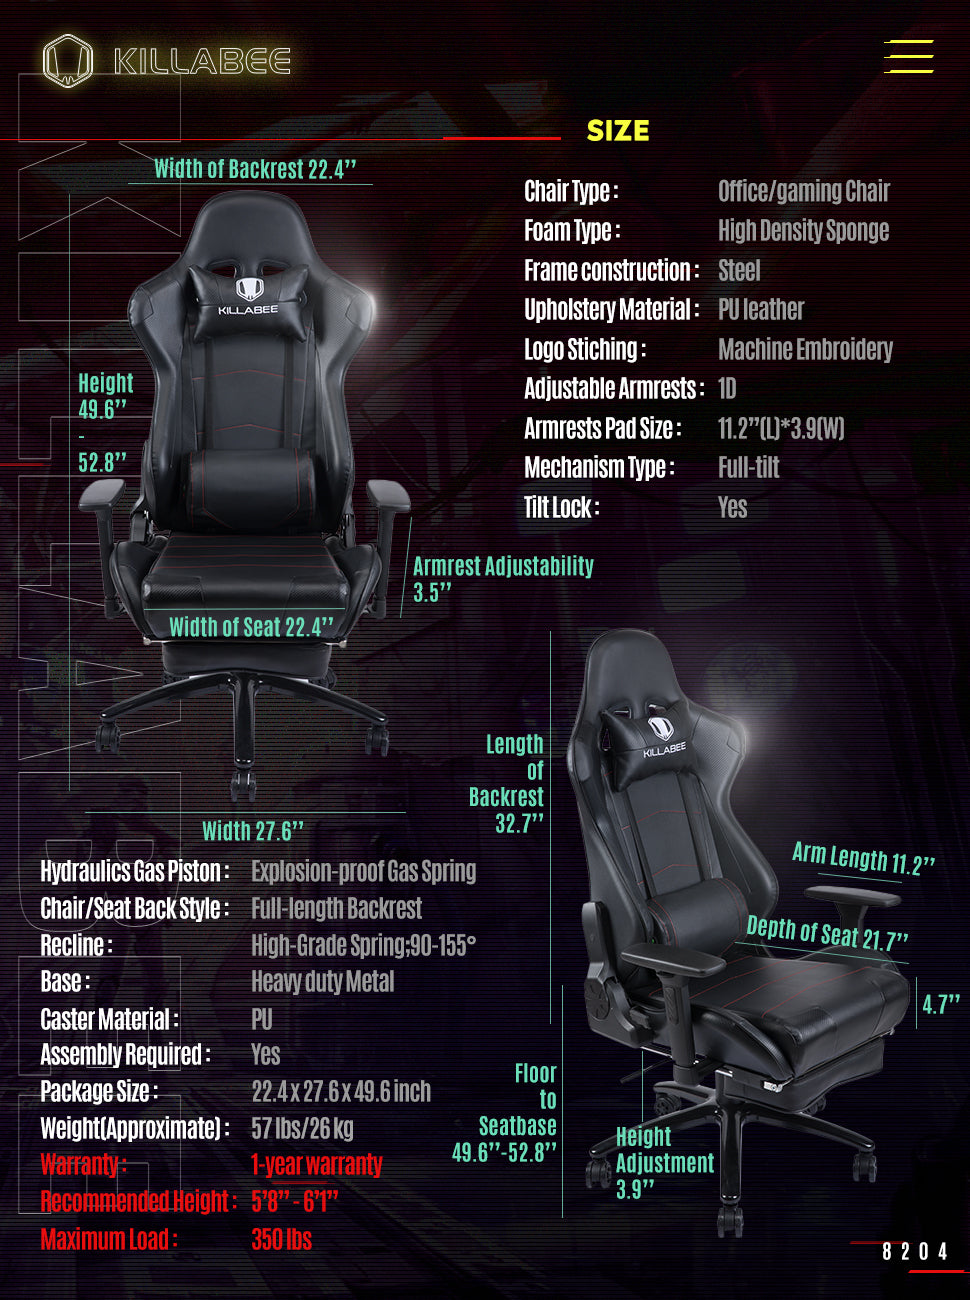 killabee ergonomic gaming chair 8204 black measurement